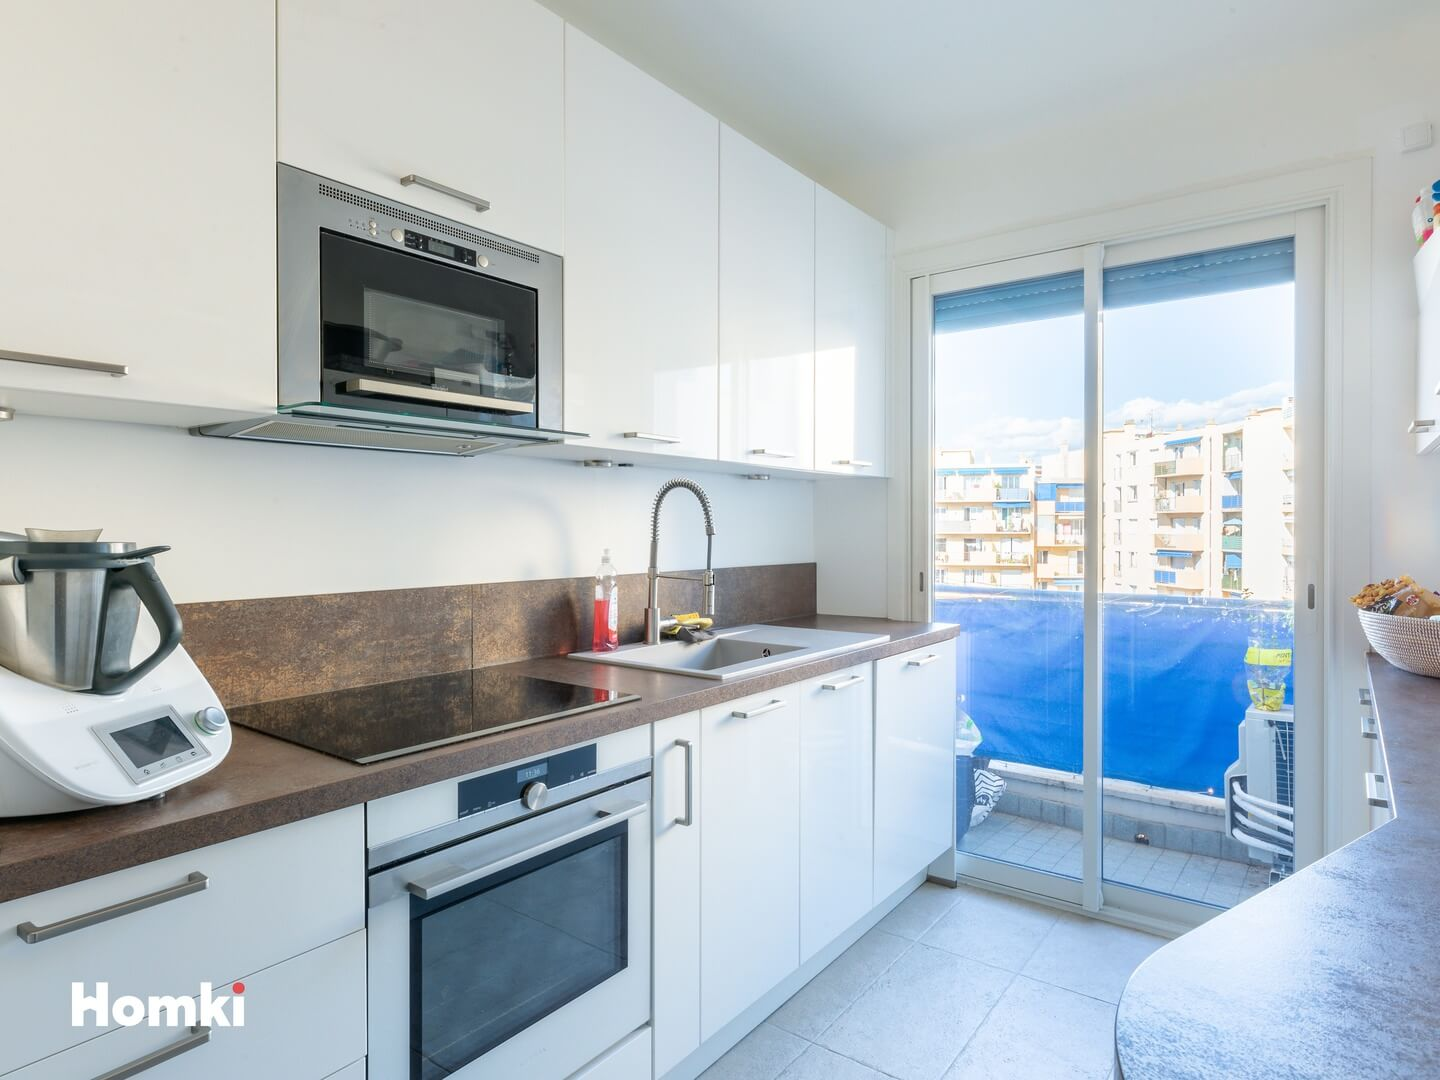 Homki - Vente Appartement  de 120.0 m² à Antibes 06600